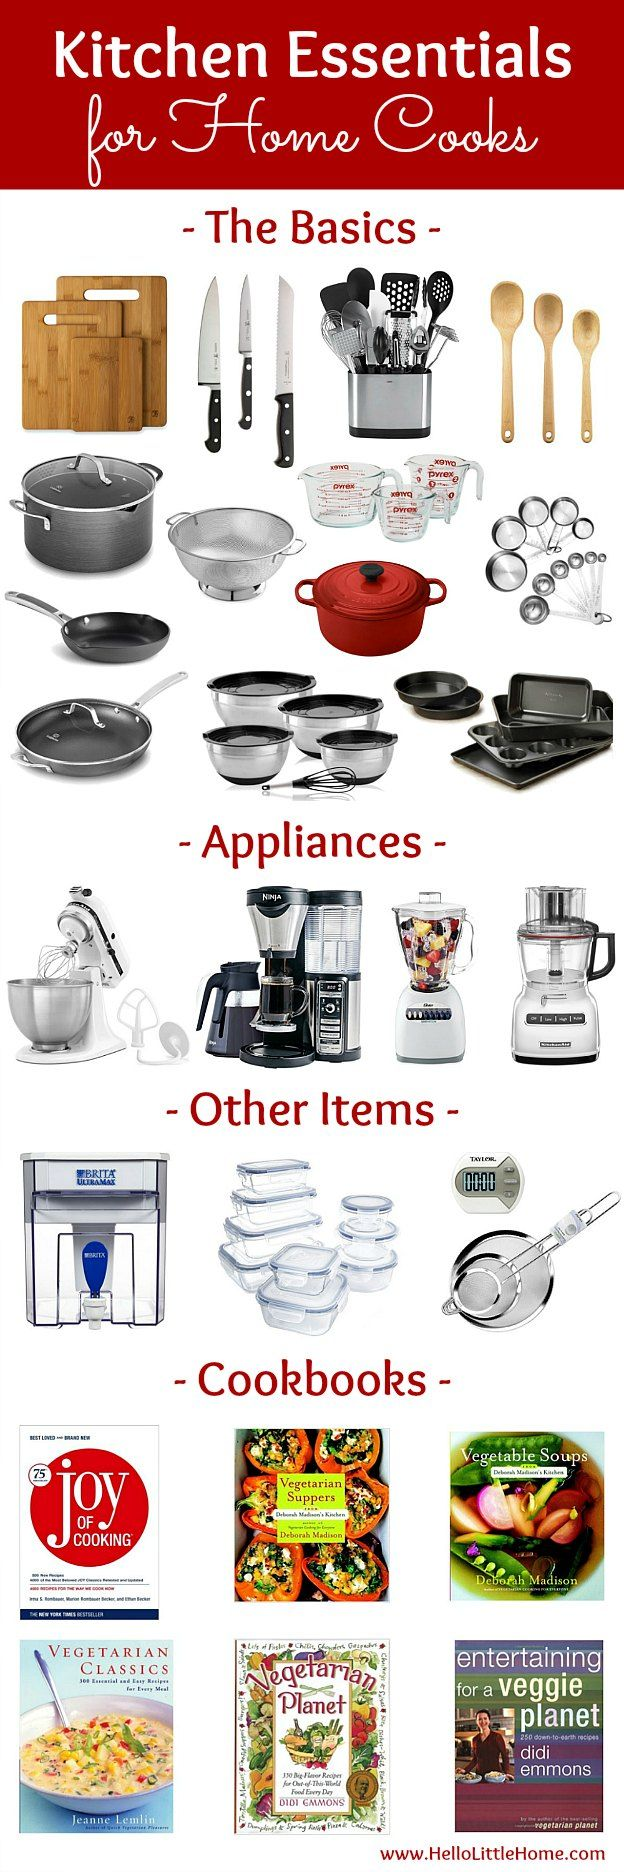 Kitchen Essentials for Home Cooks is part of Kitchen essentials list, Kitchen essentials, Apartment essentials, Kitchen gadgets organization, Kitchen utensils list, Cool kitchens - From basics to fun gadgets, this kitchen essentials list has everything you need to start creating delicious meals!